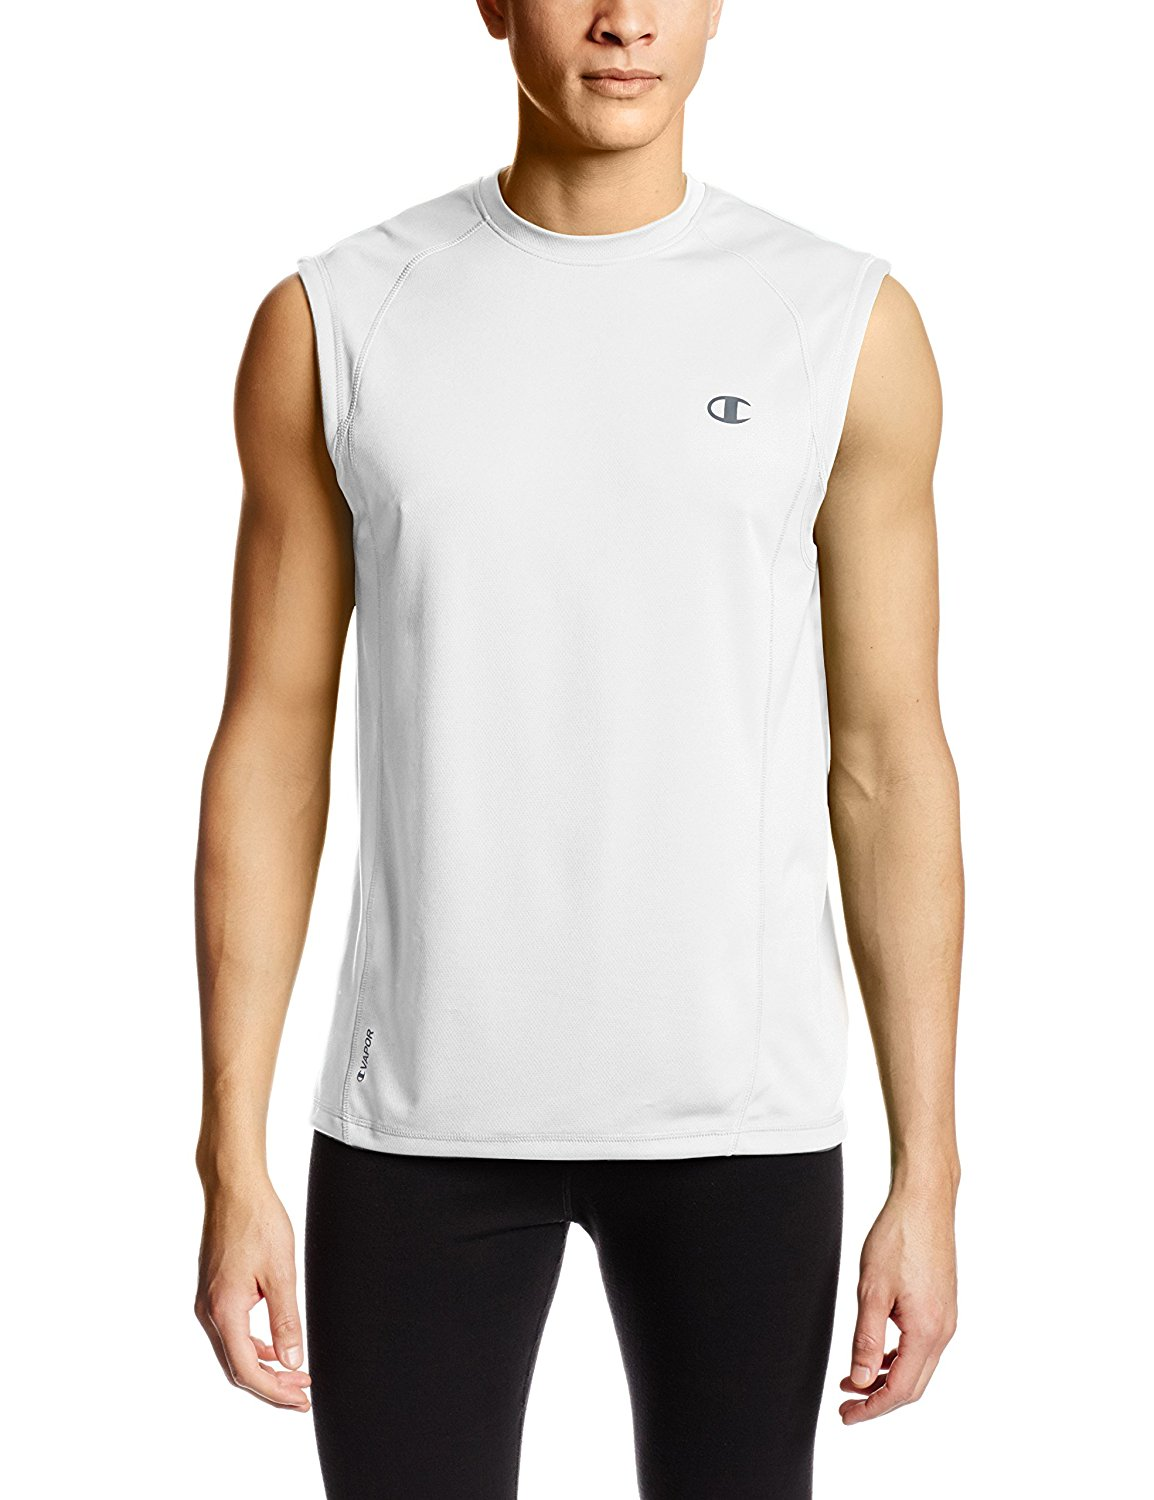 a9036948 Buy Champion Mens Powertrain Muscle T-Shirt in Cheap Price on ...